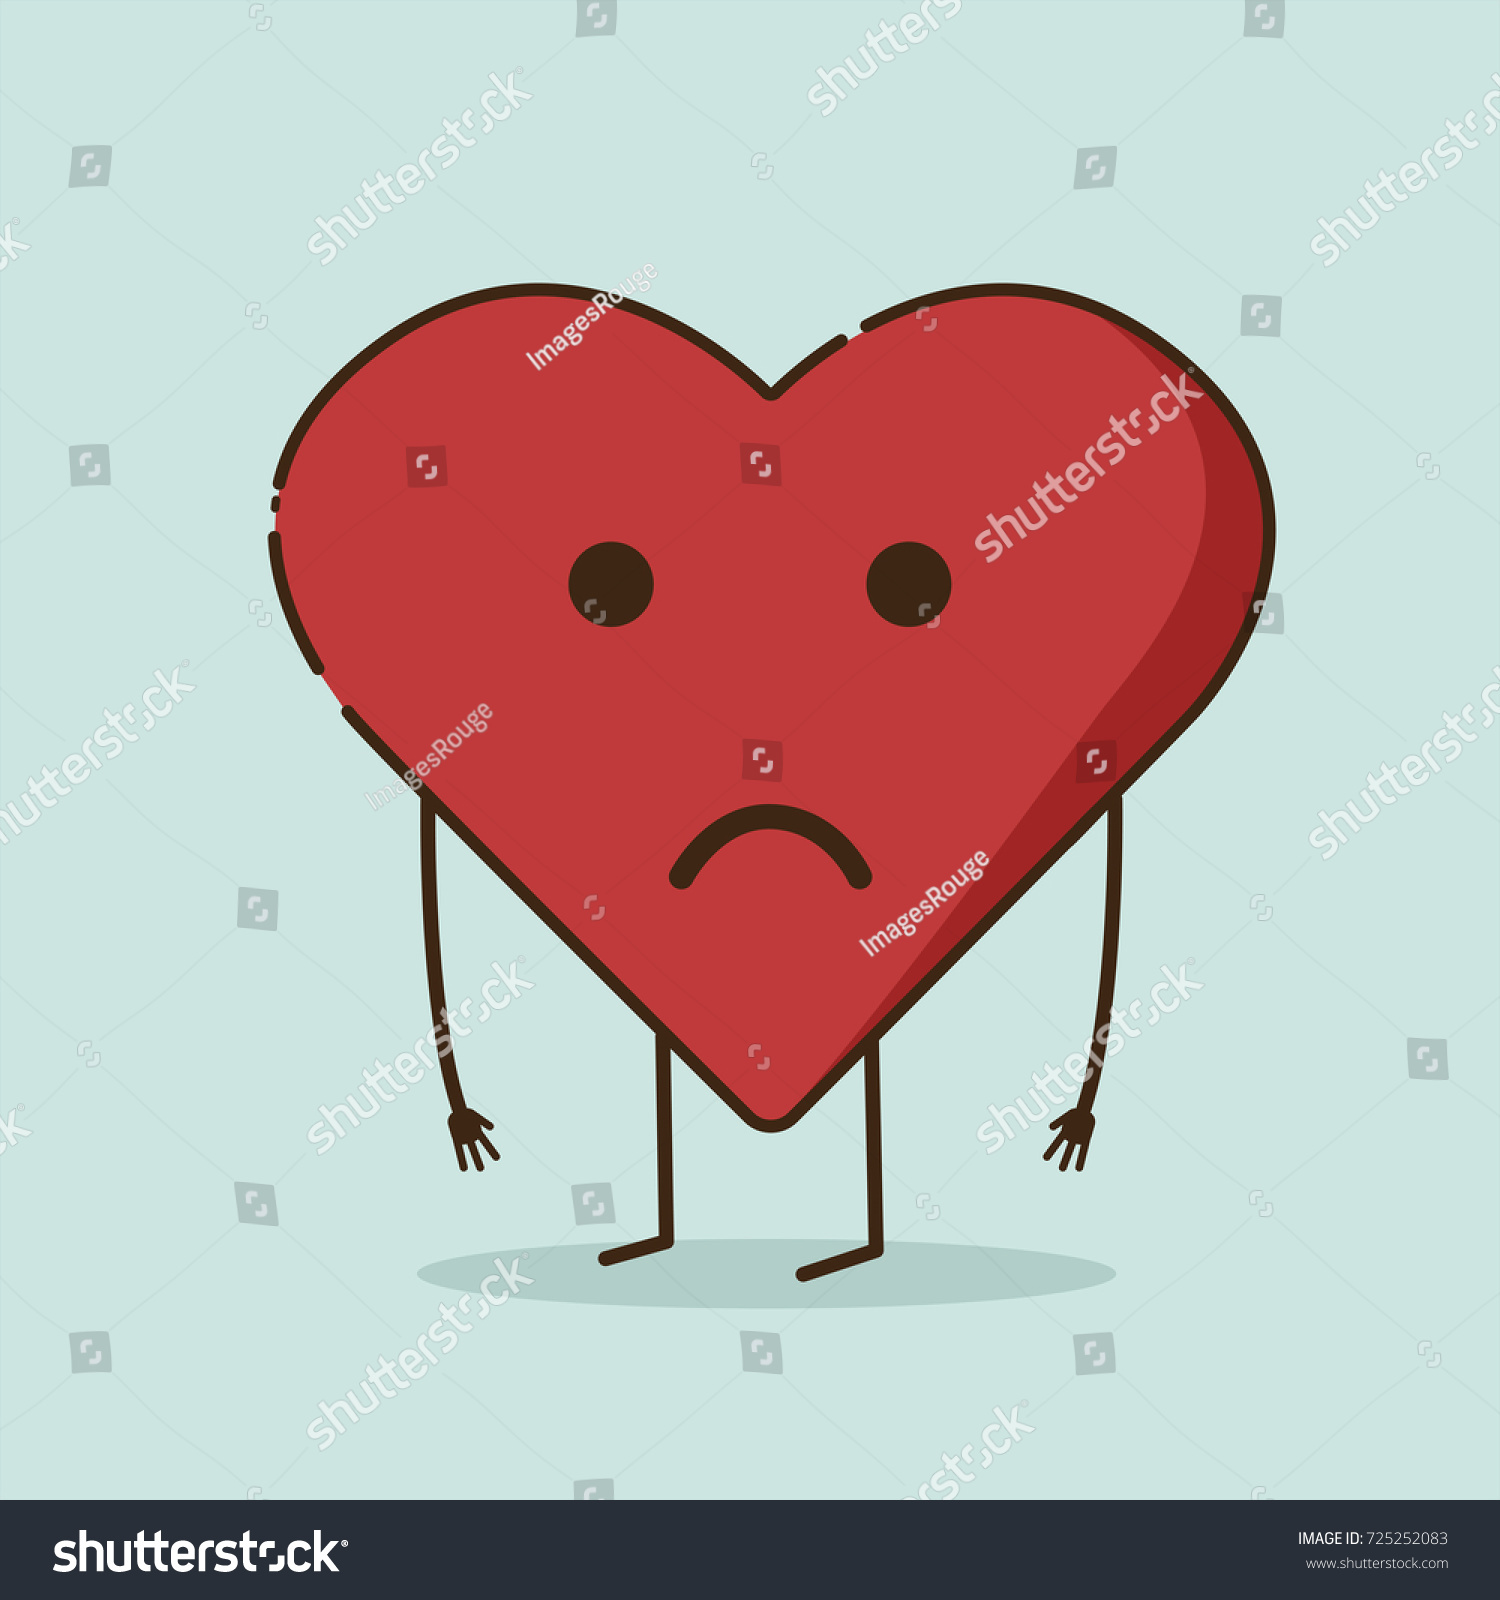 Sad Heart Character Vector Illustration Stock Vector Royalty Free